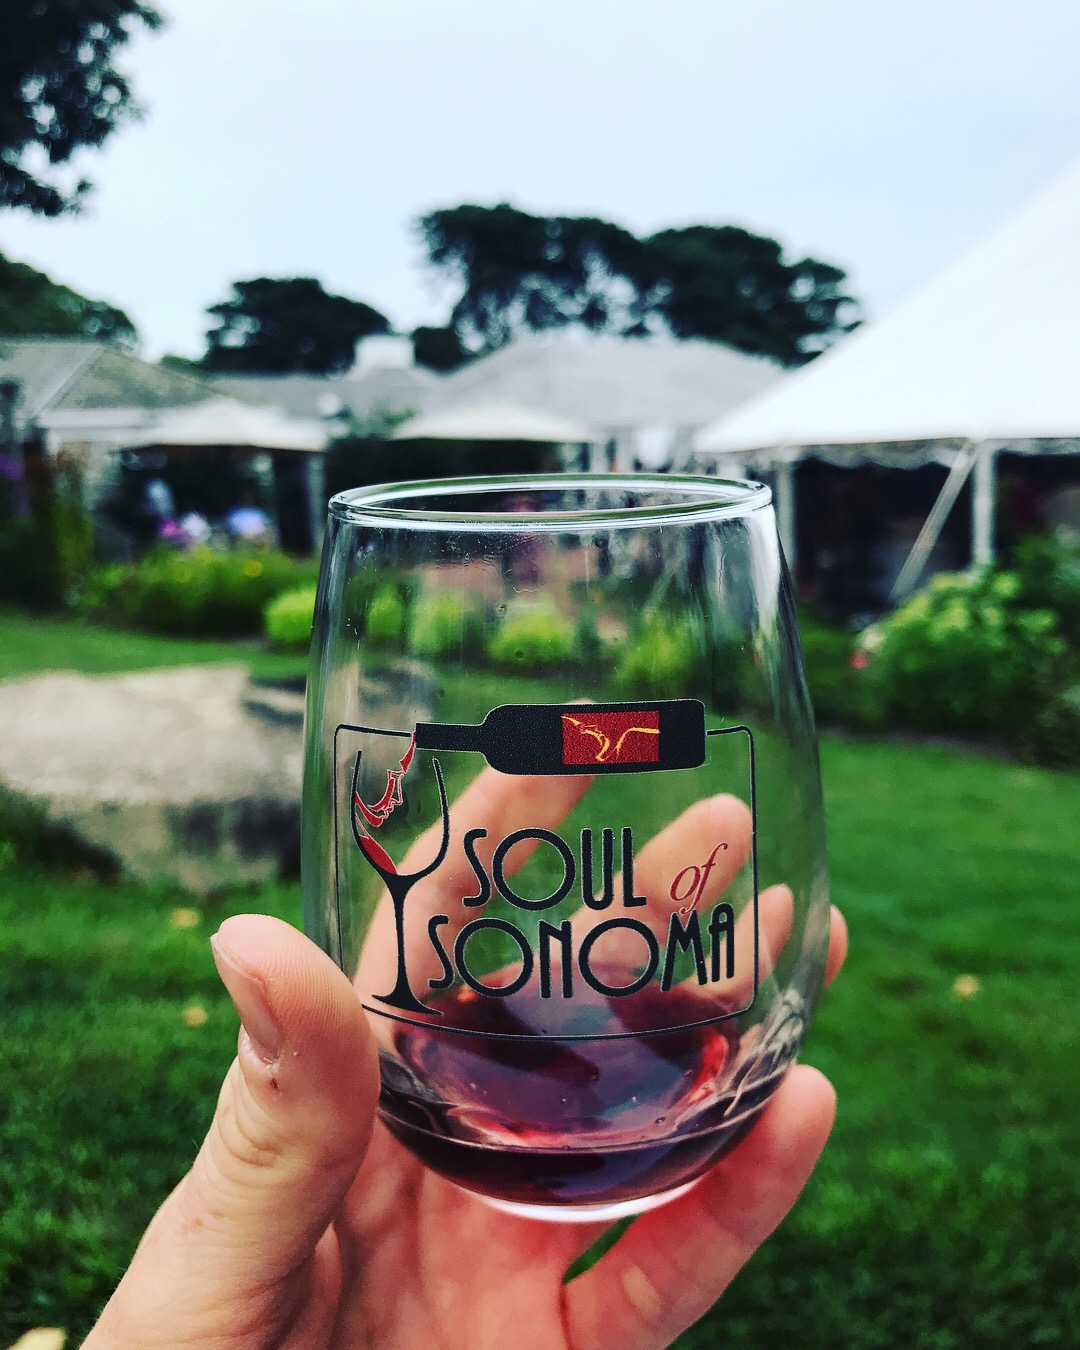 Join us for Soul of Sonoma on the Vineyard 2019